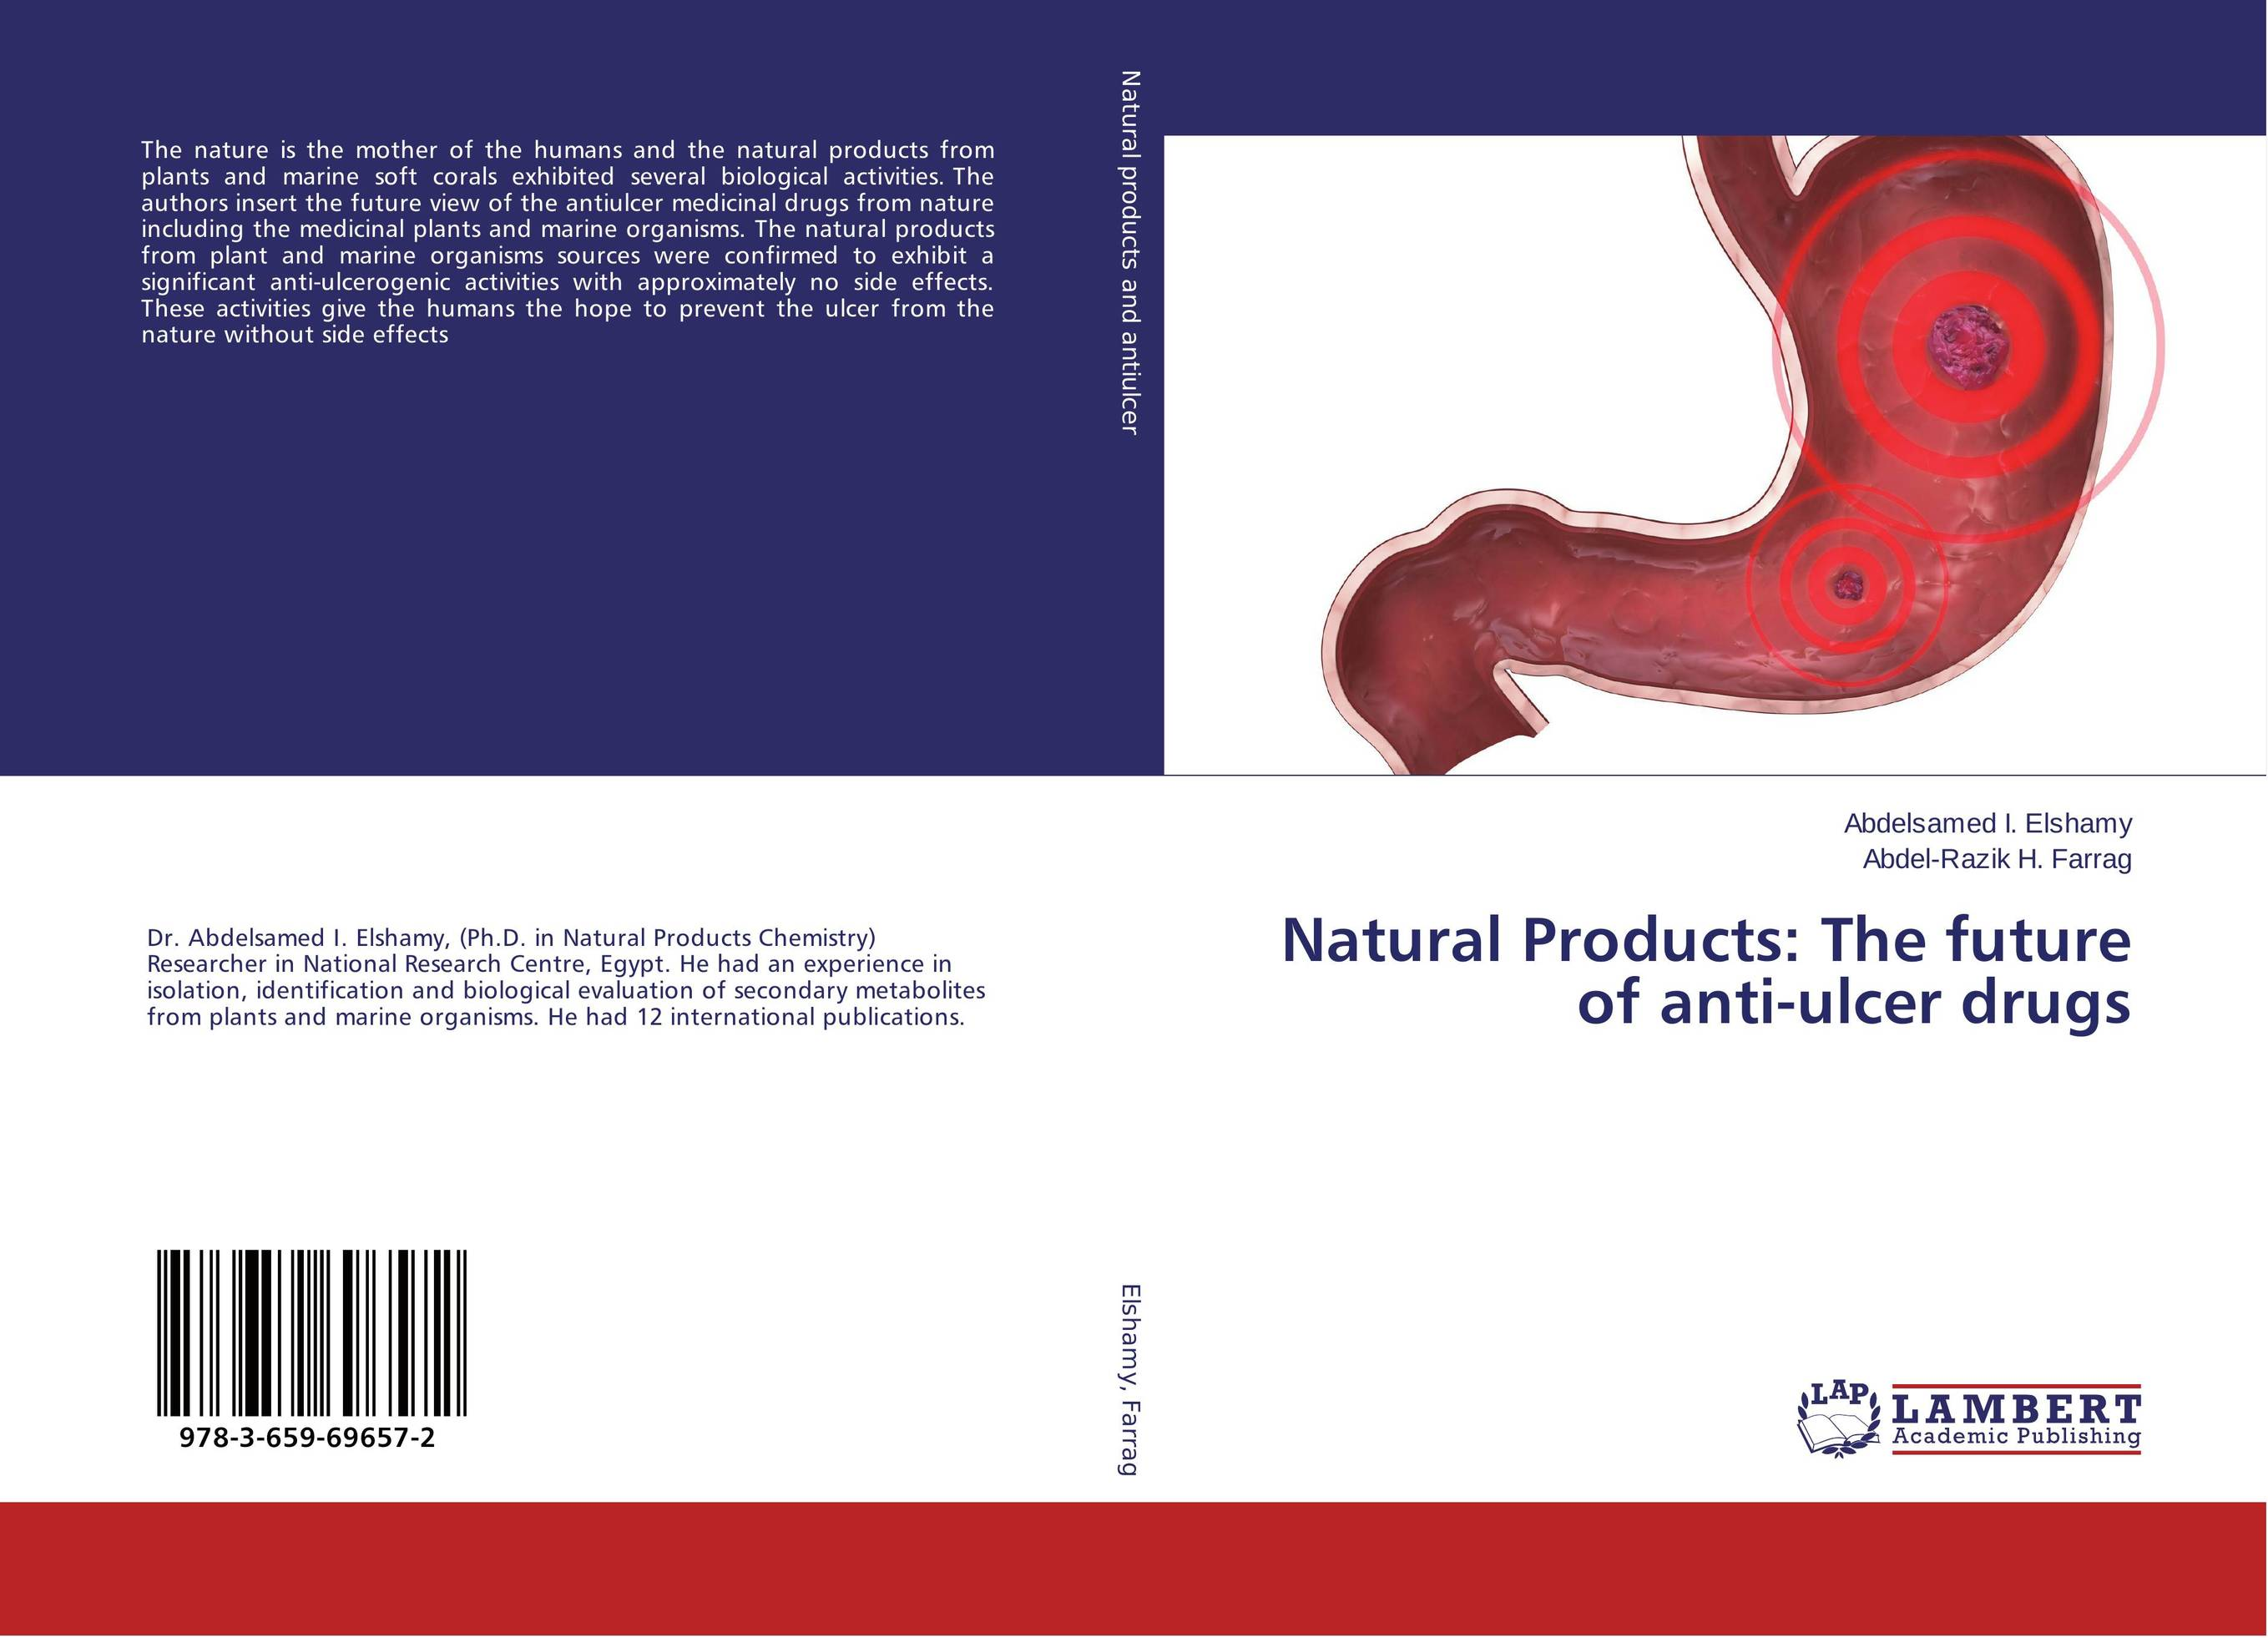 Natural Products: The future of anti-ulcer drugs